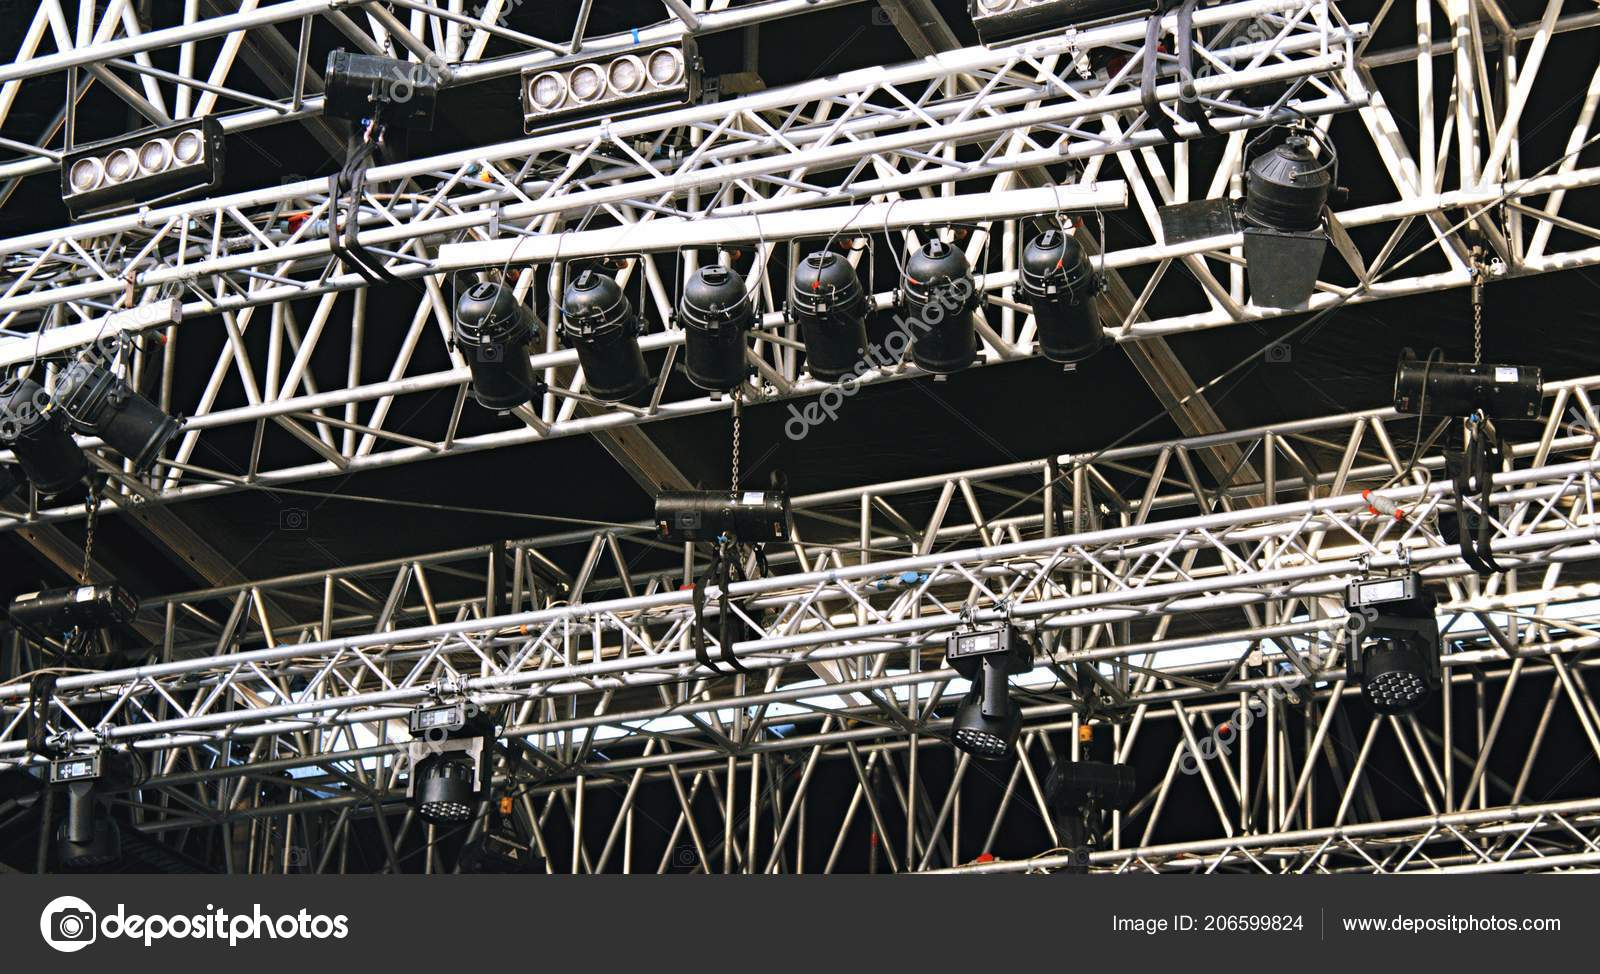 Concert Stage Spot Lighting Rigging Structure Live Musical